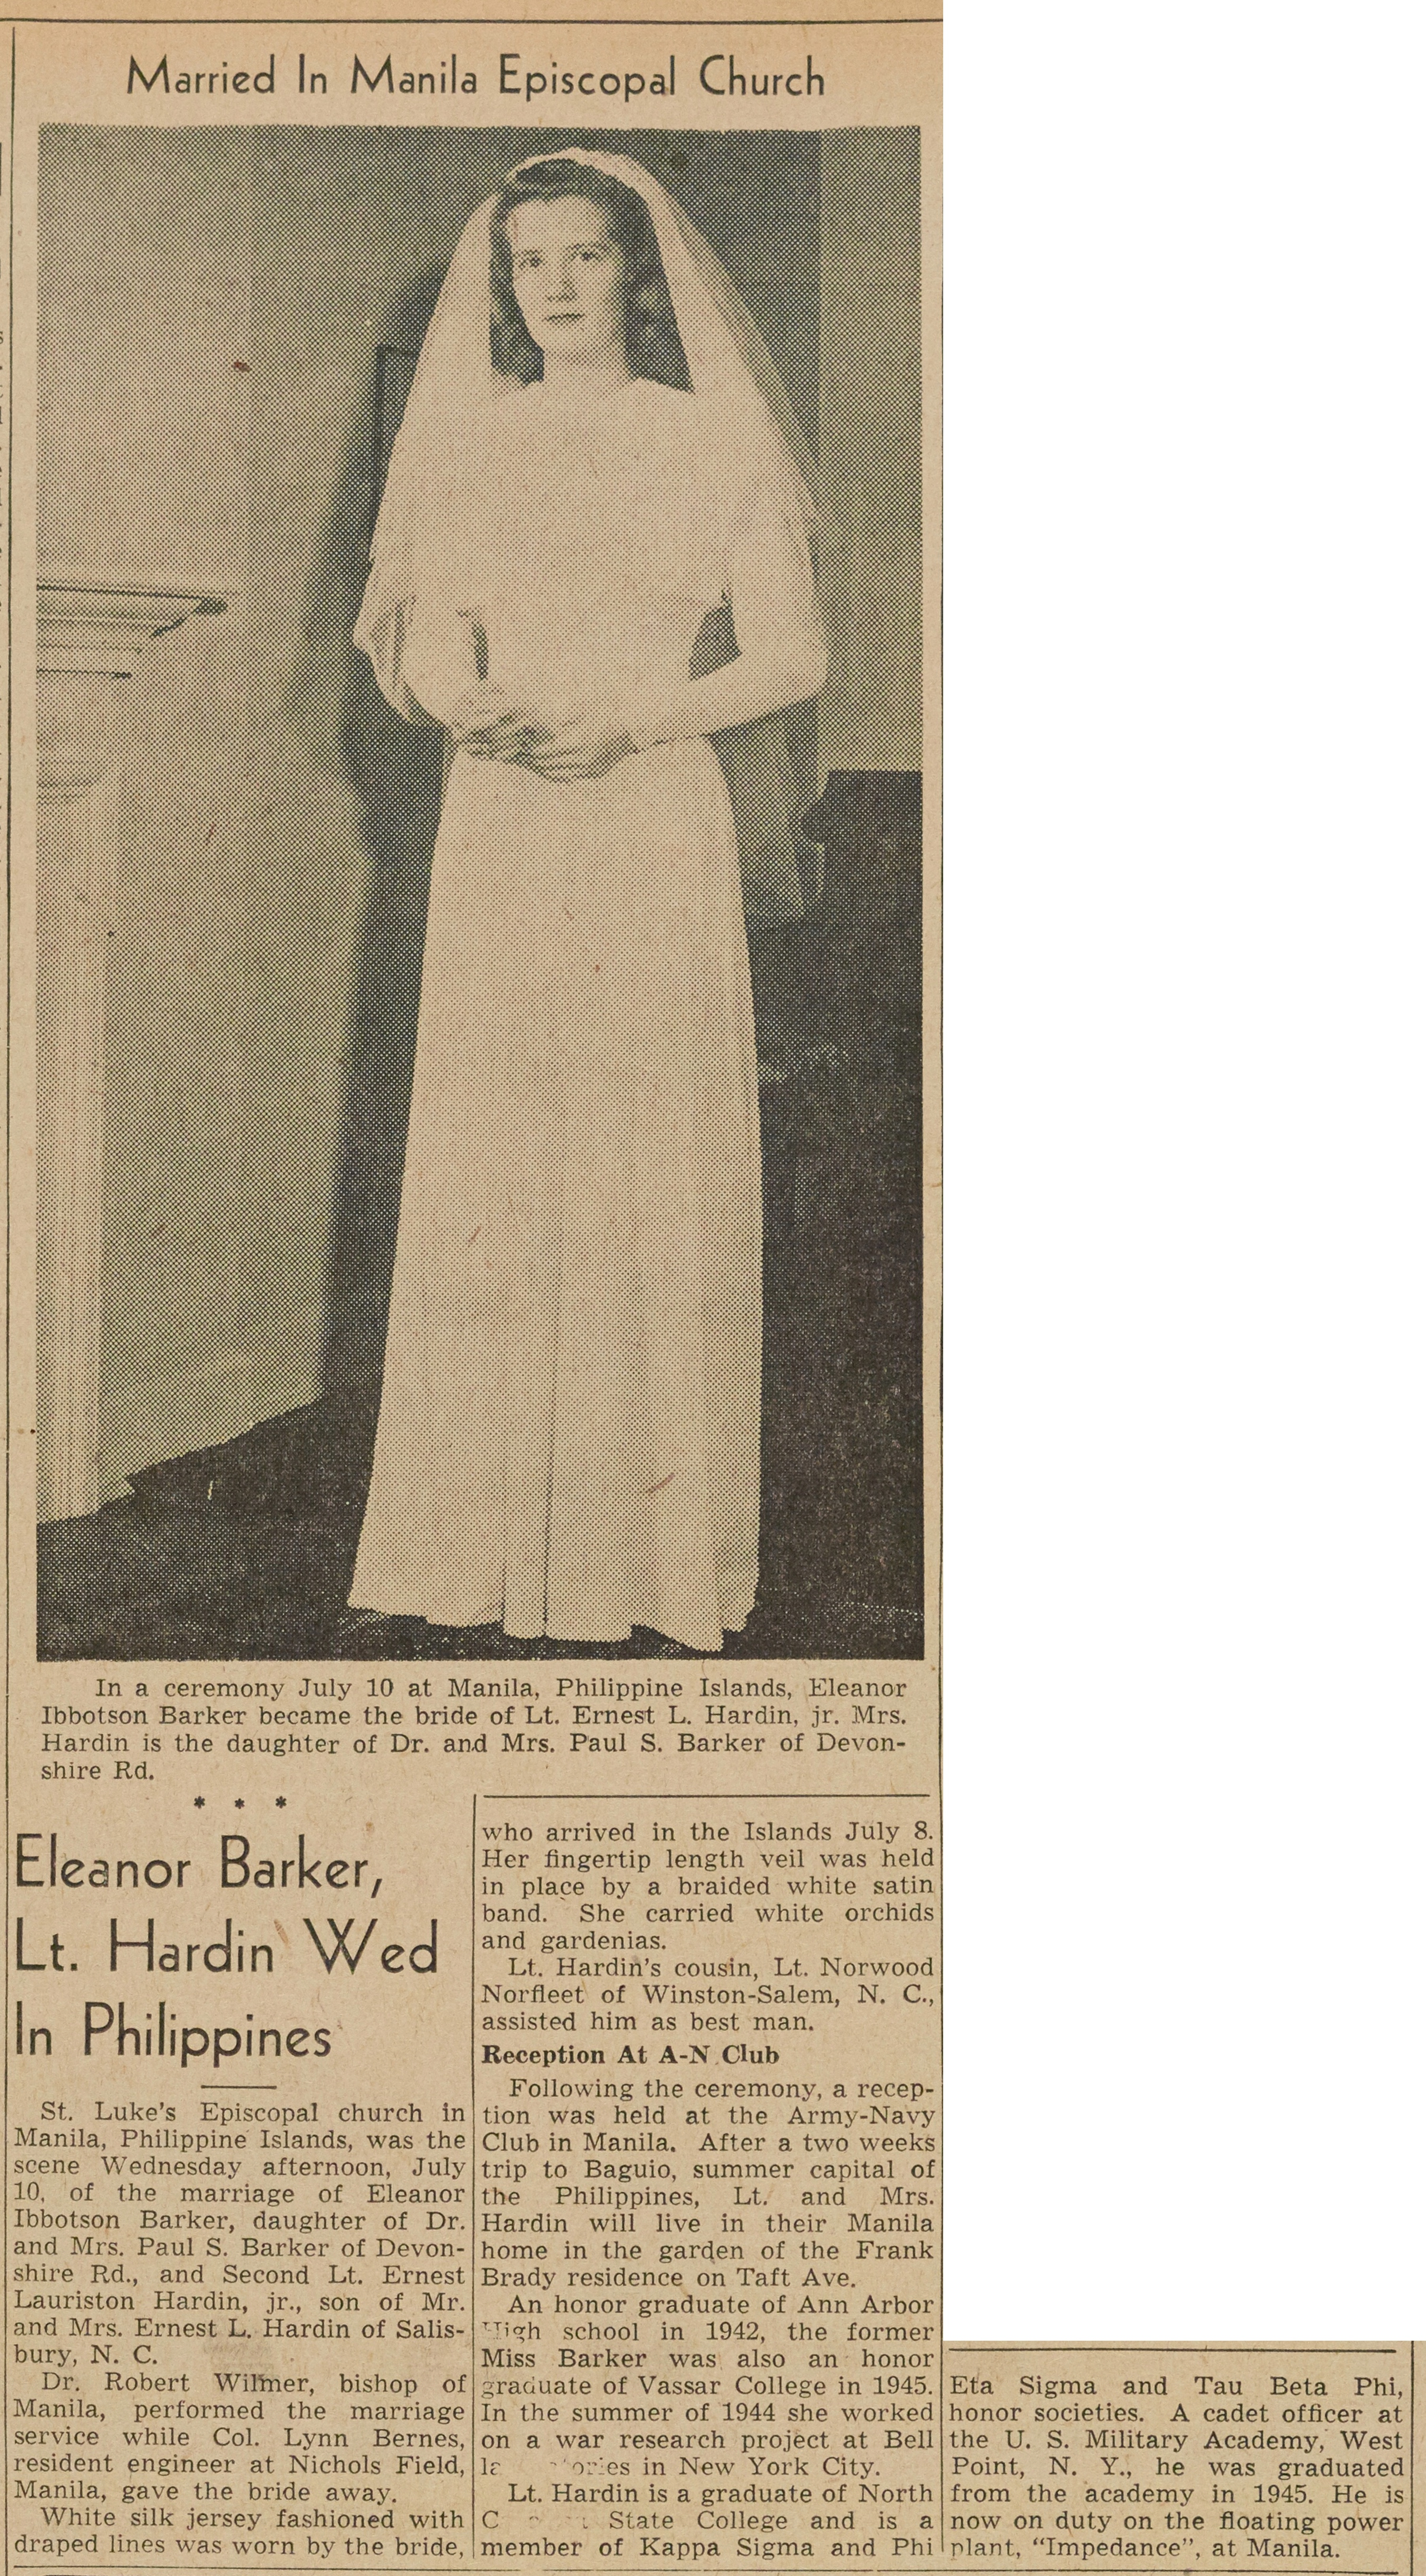 Eleanor Barker, Lt. Hardin Wed In Philippines image